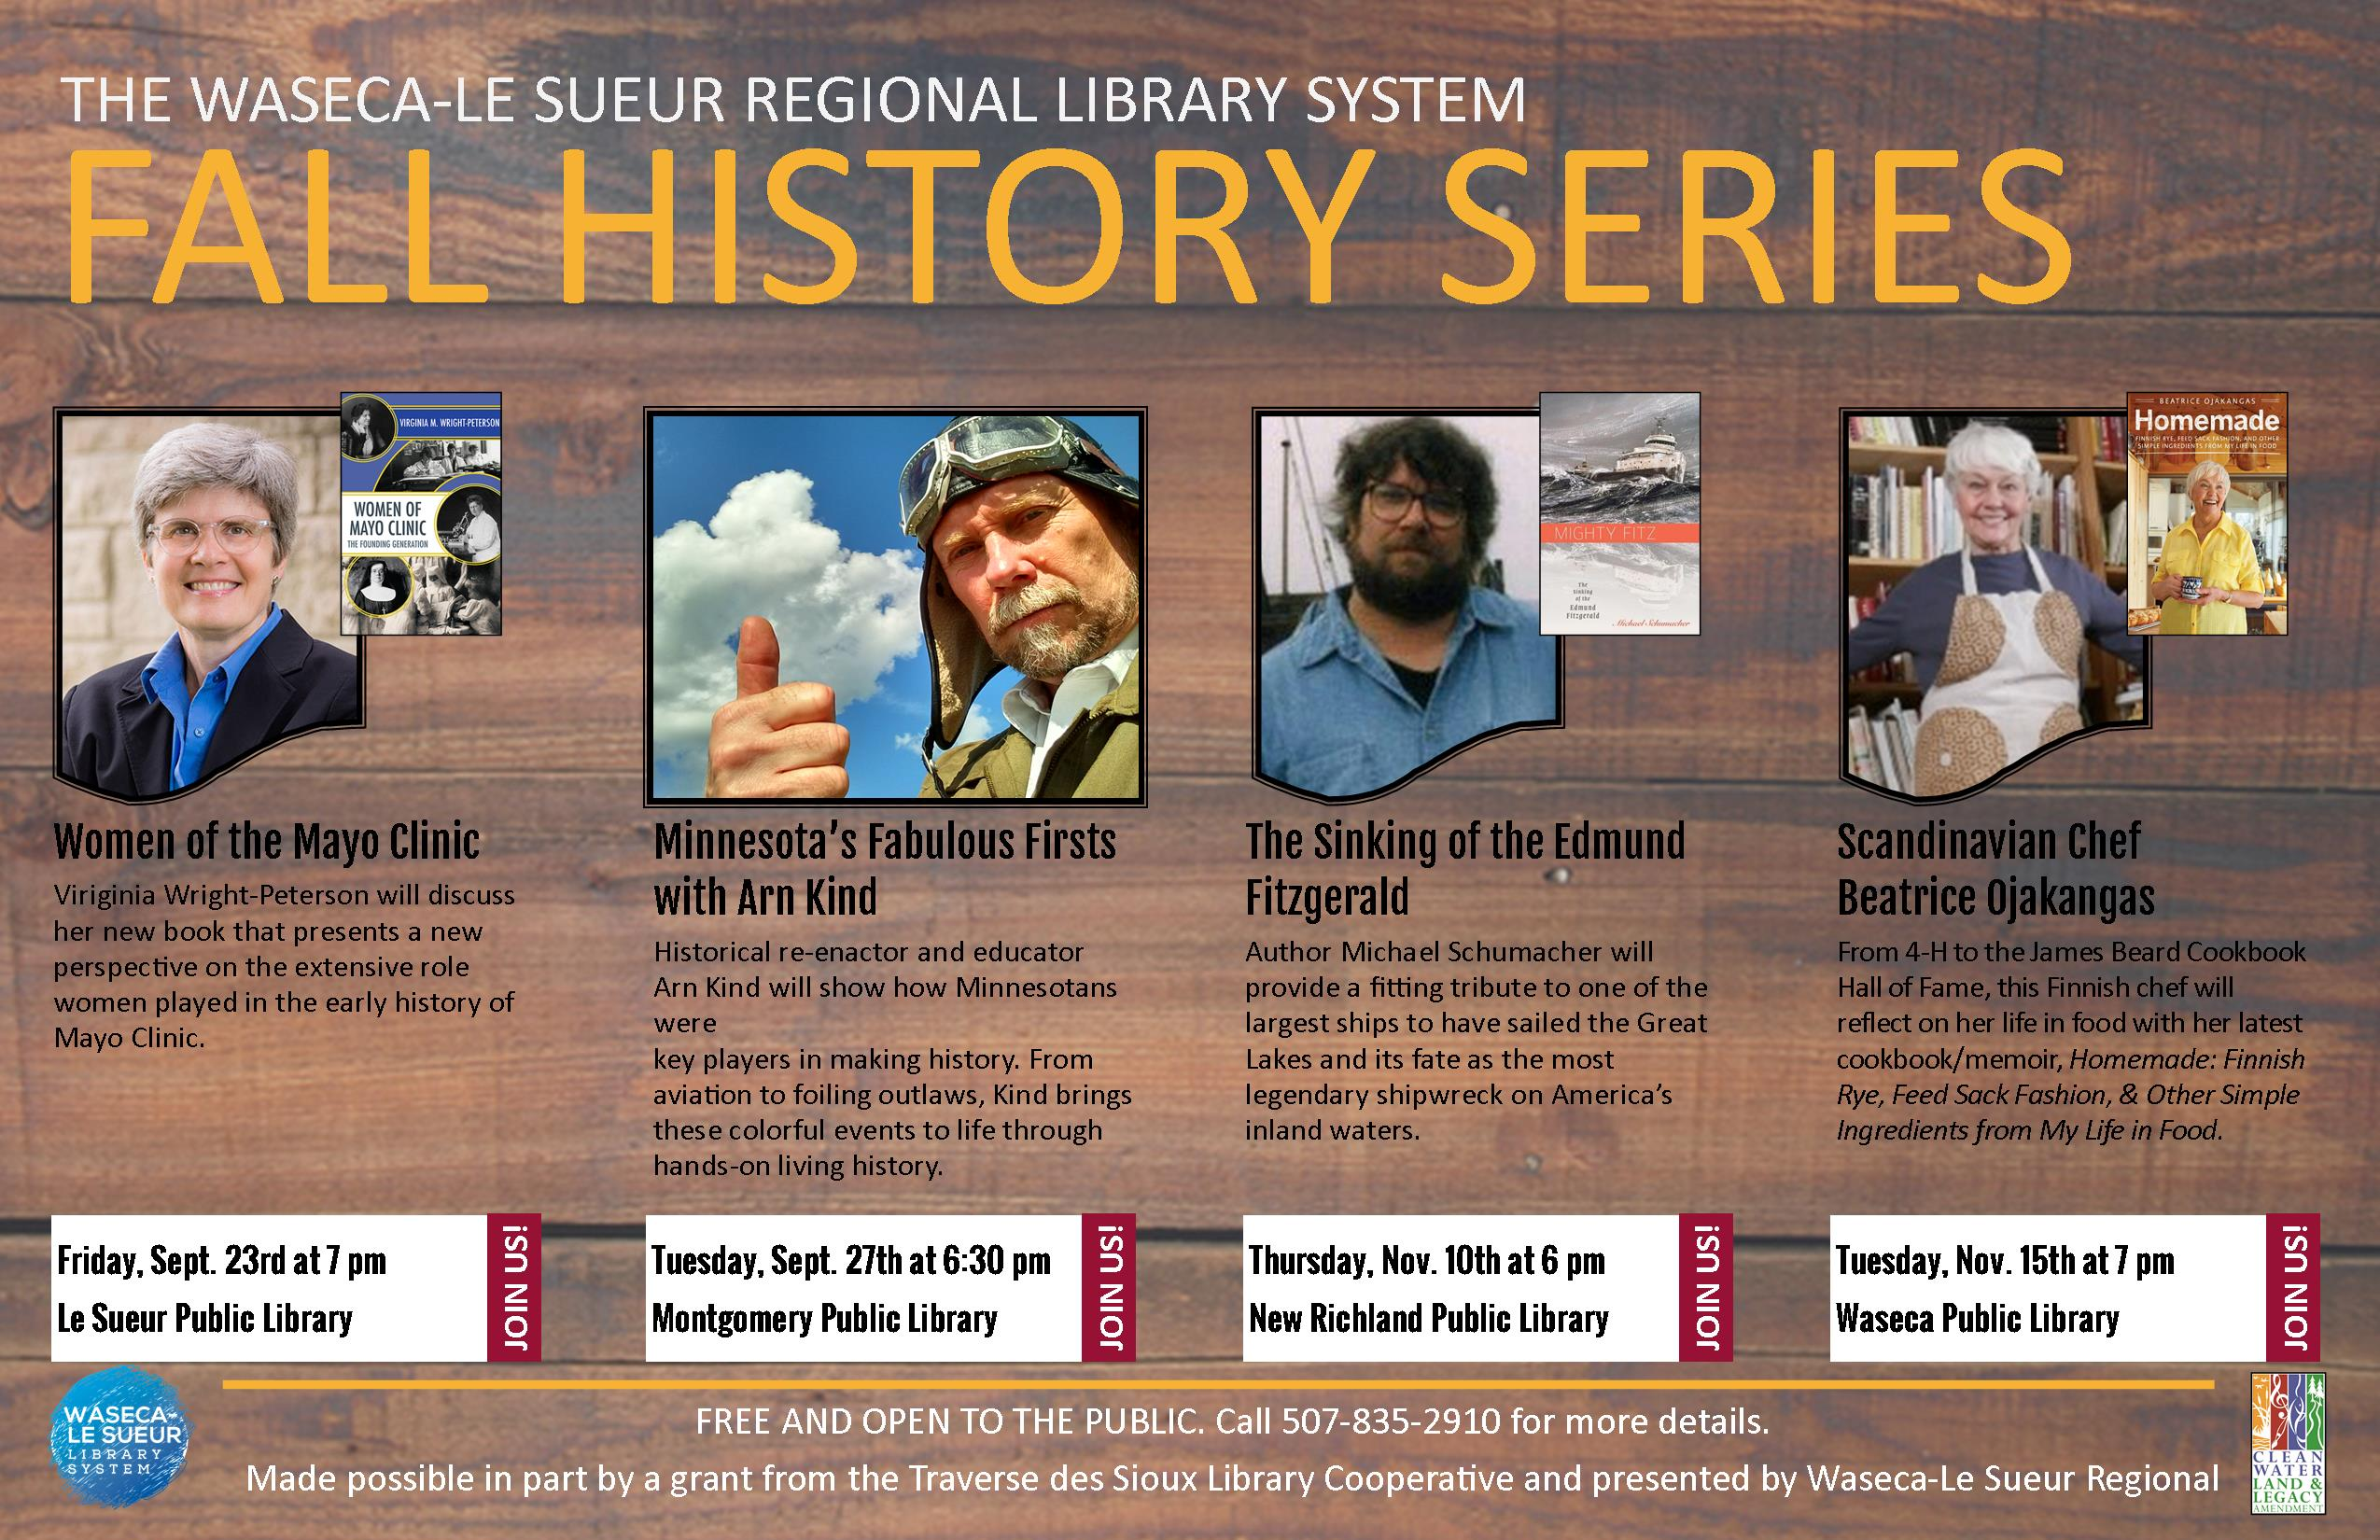 916 Fall History Series Poster